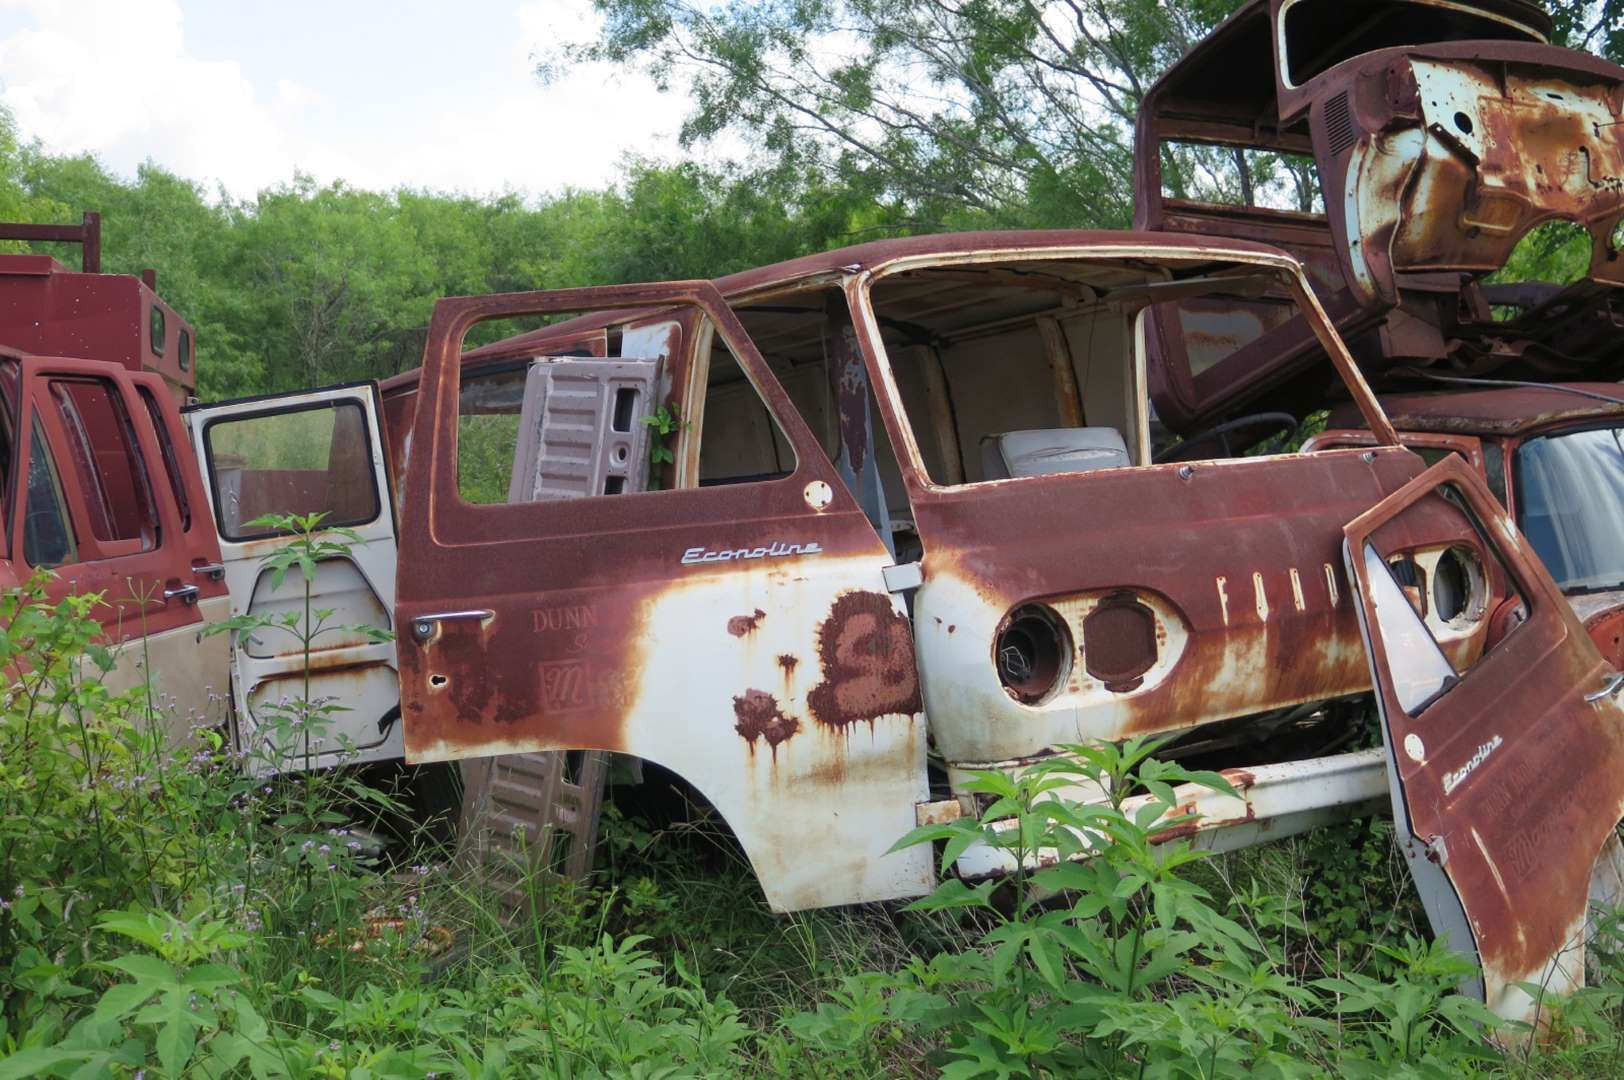 Ford Econoline Wrecking Yards Old Cars Hot Rods